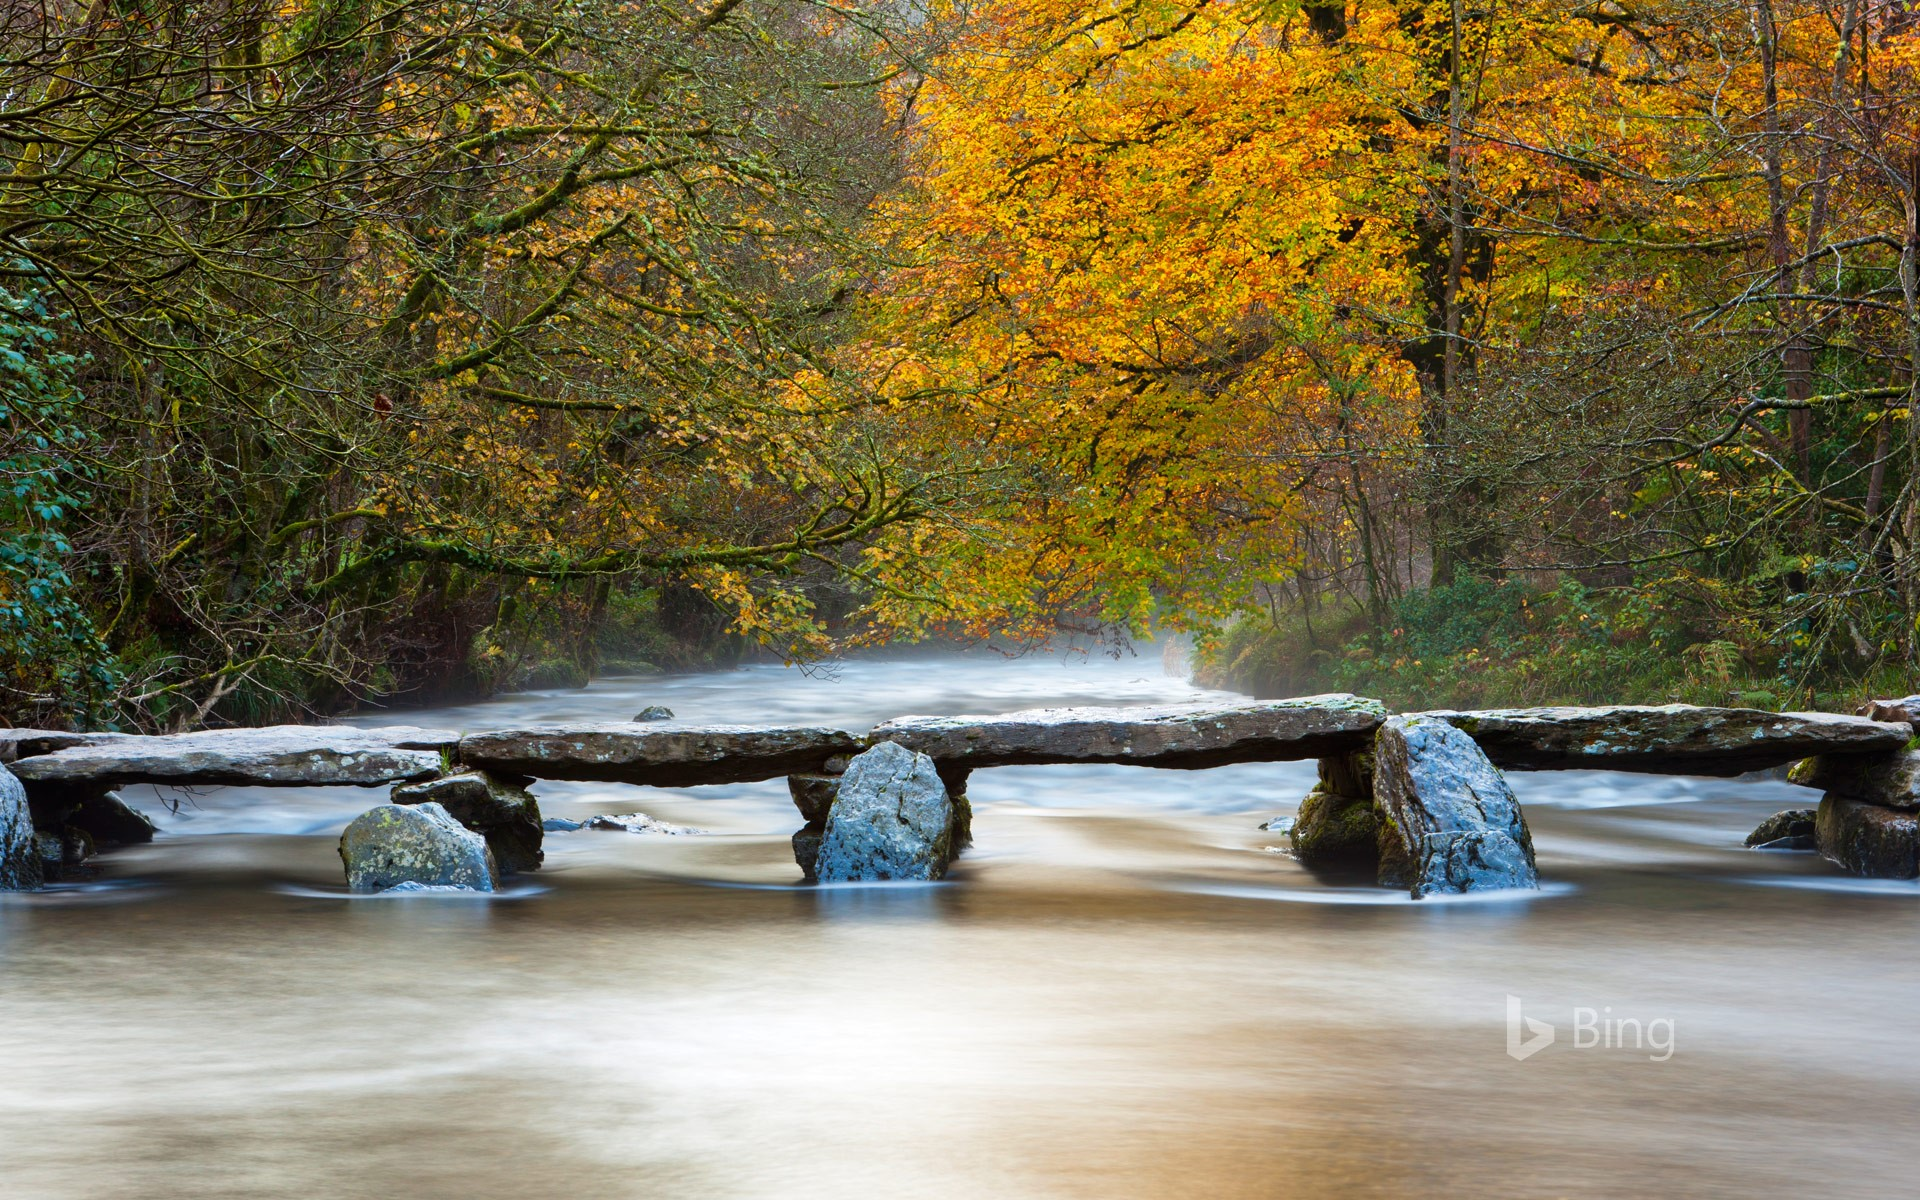 The Tarr Steps across the River Barle in Exmoor National Park, Somerset